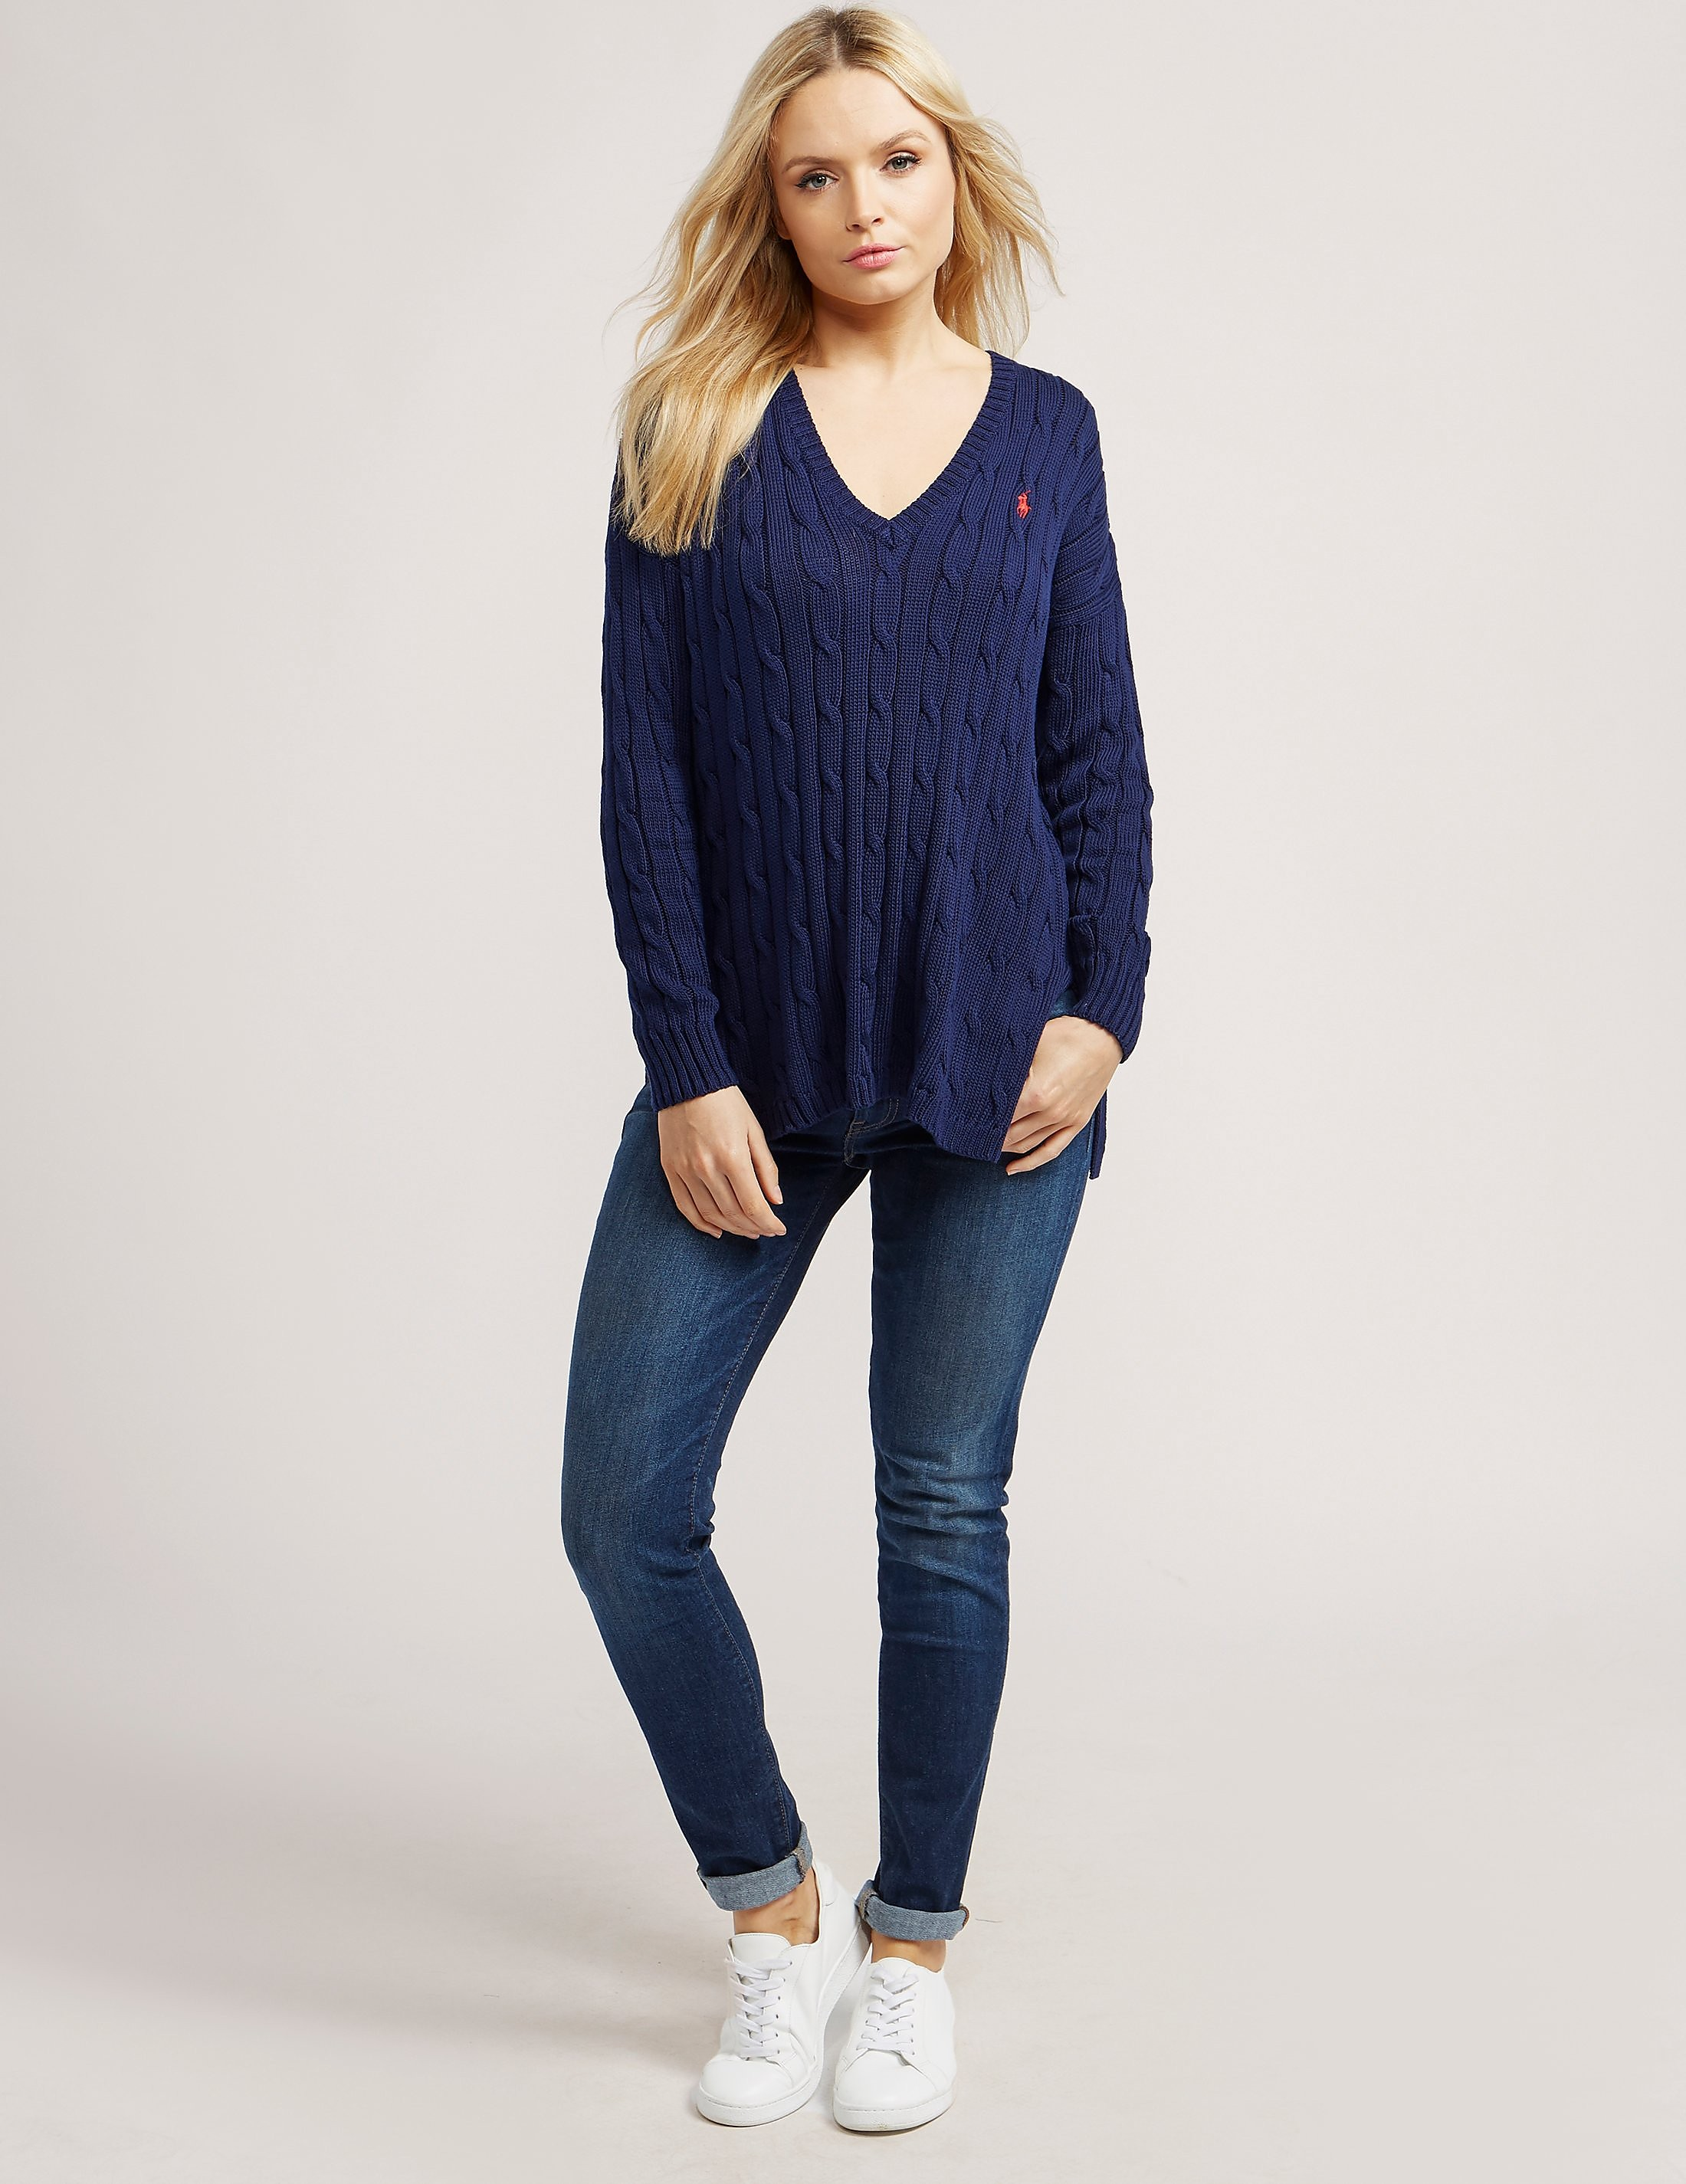 Polo Ralph Lauren Side Slit Knit